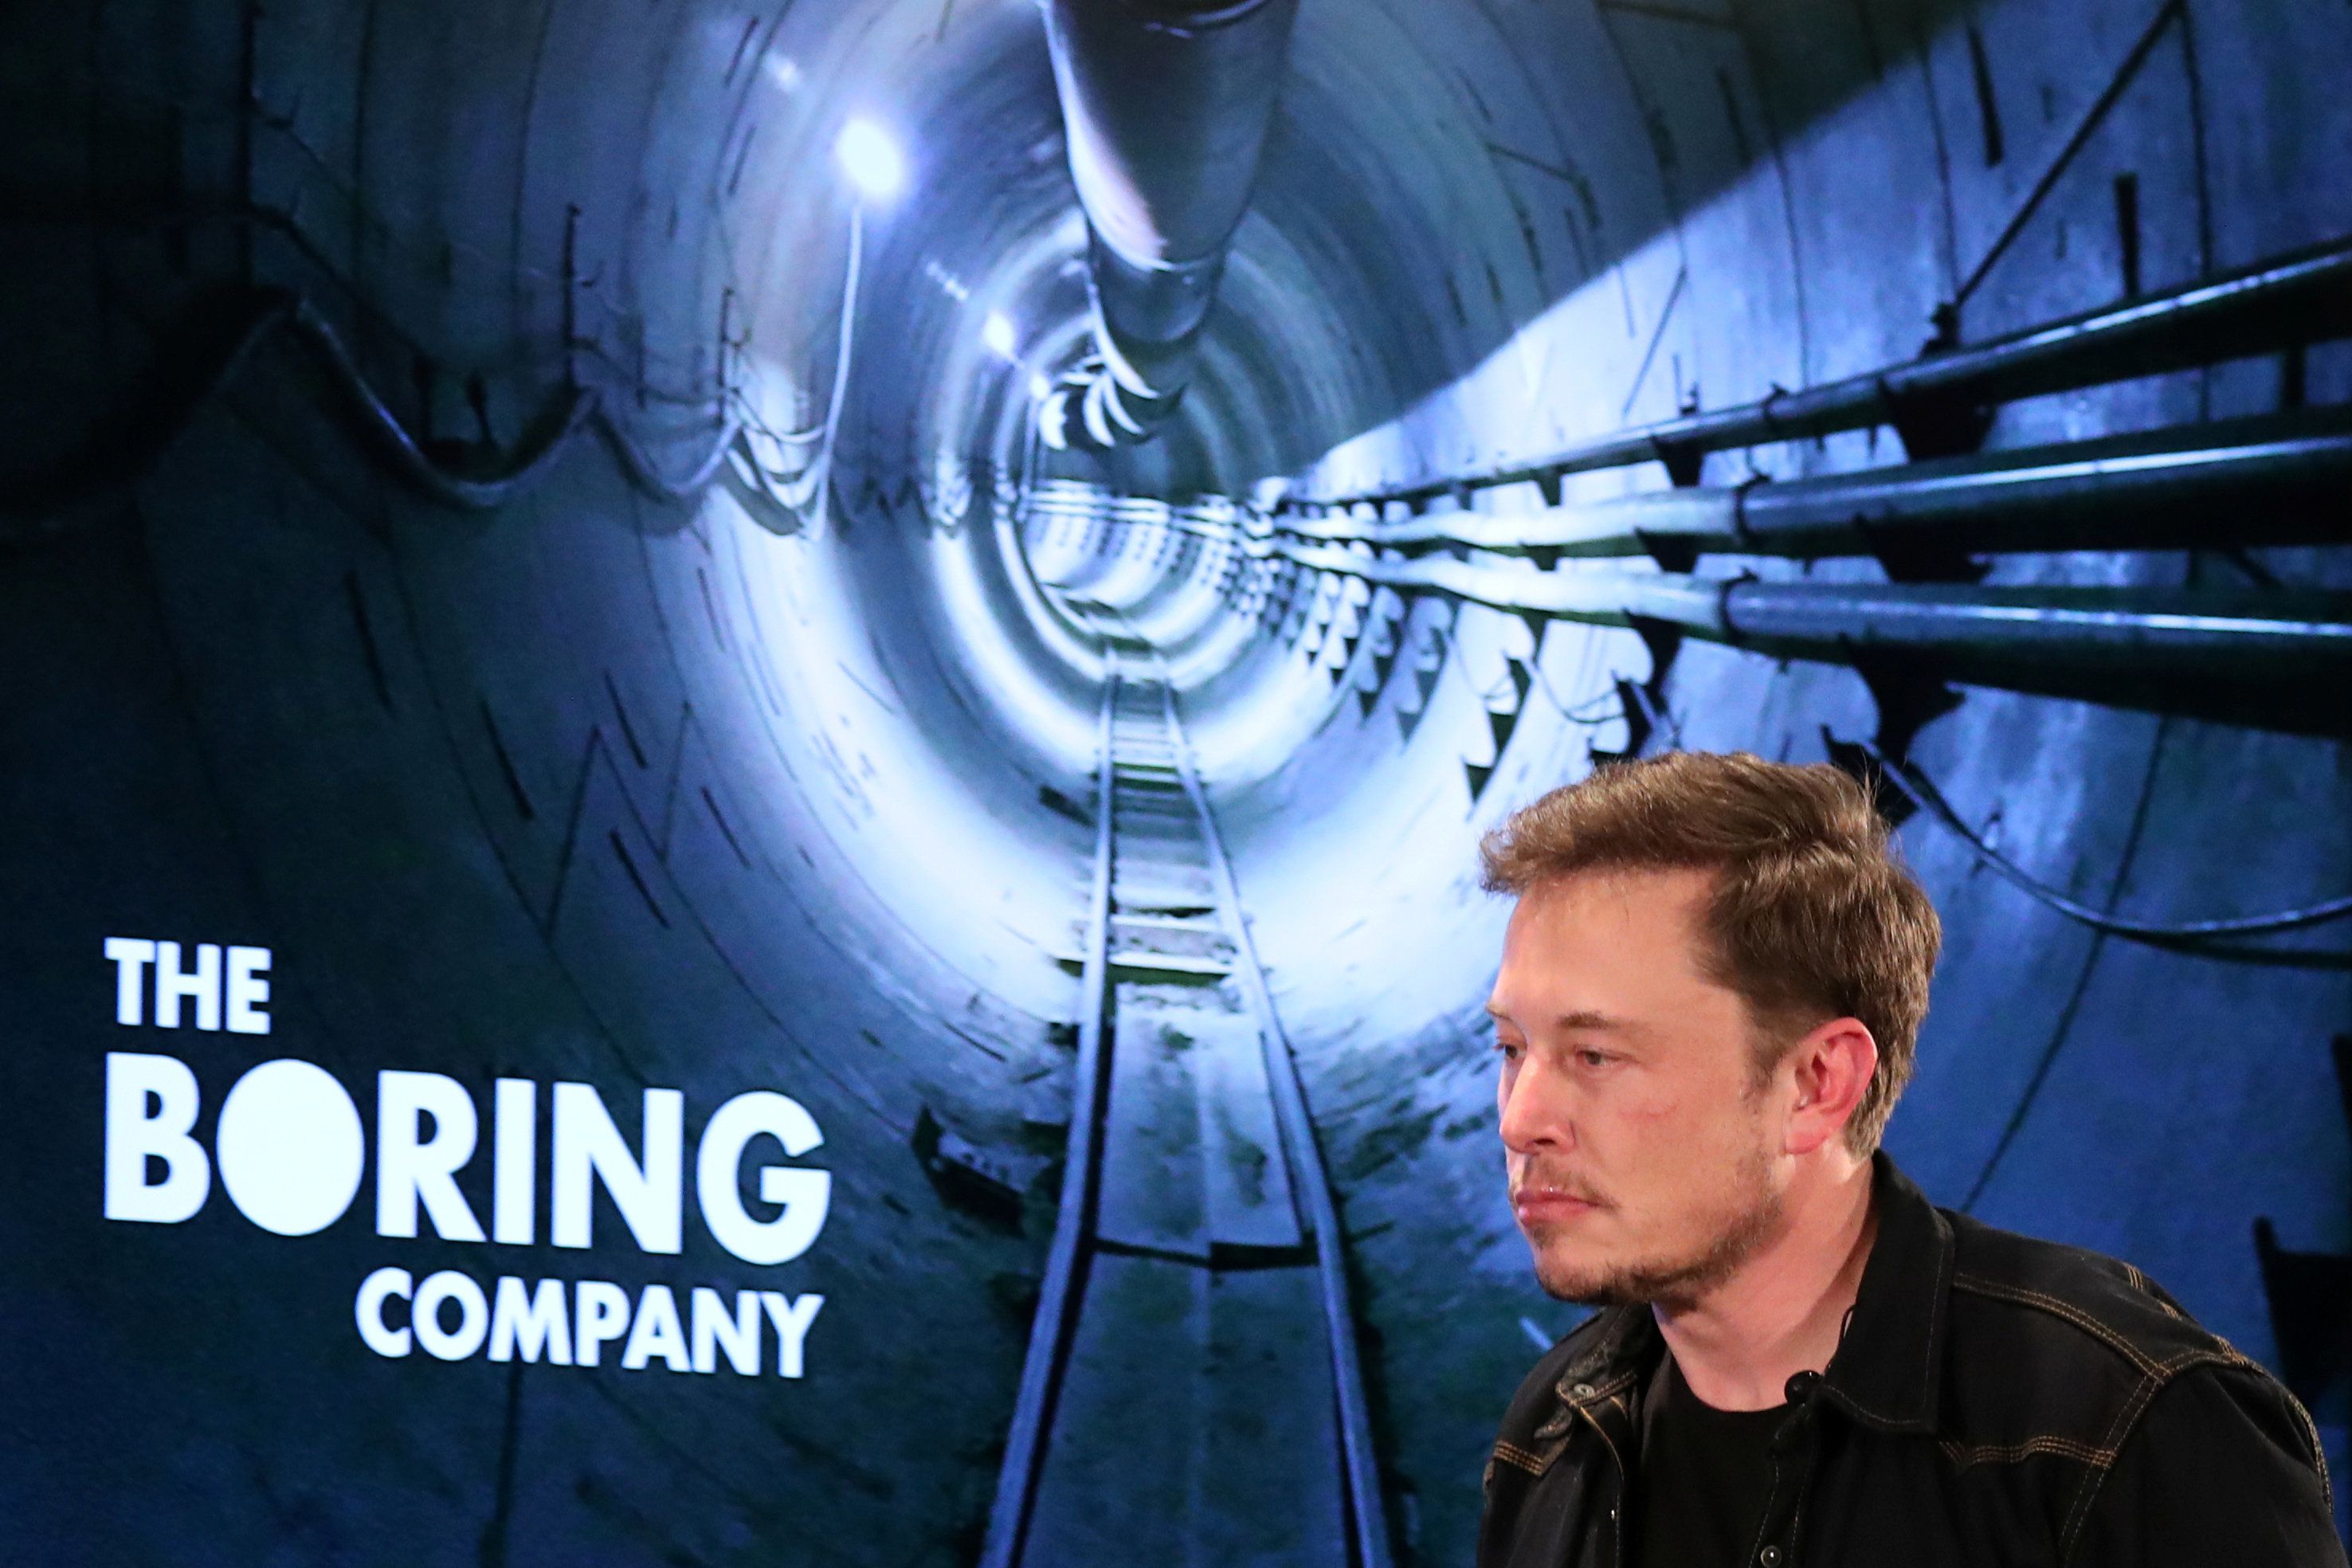 Elon Musk arrives to speak at Boring Company community meeting in Bel Air, Los Angeles, California, U.S. May 17, 2018. REUTERS/Lucy Nicholson